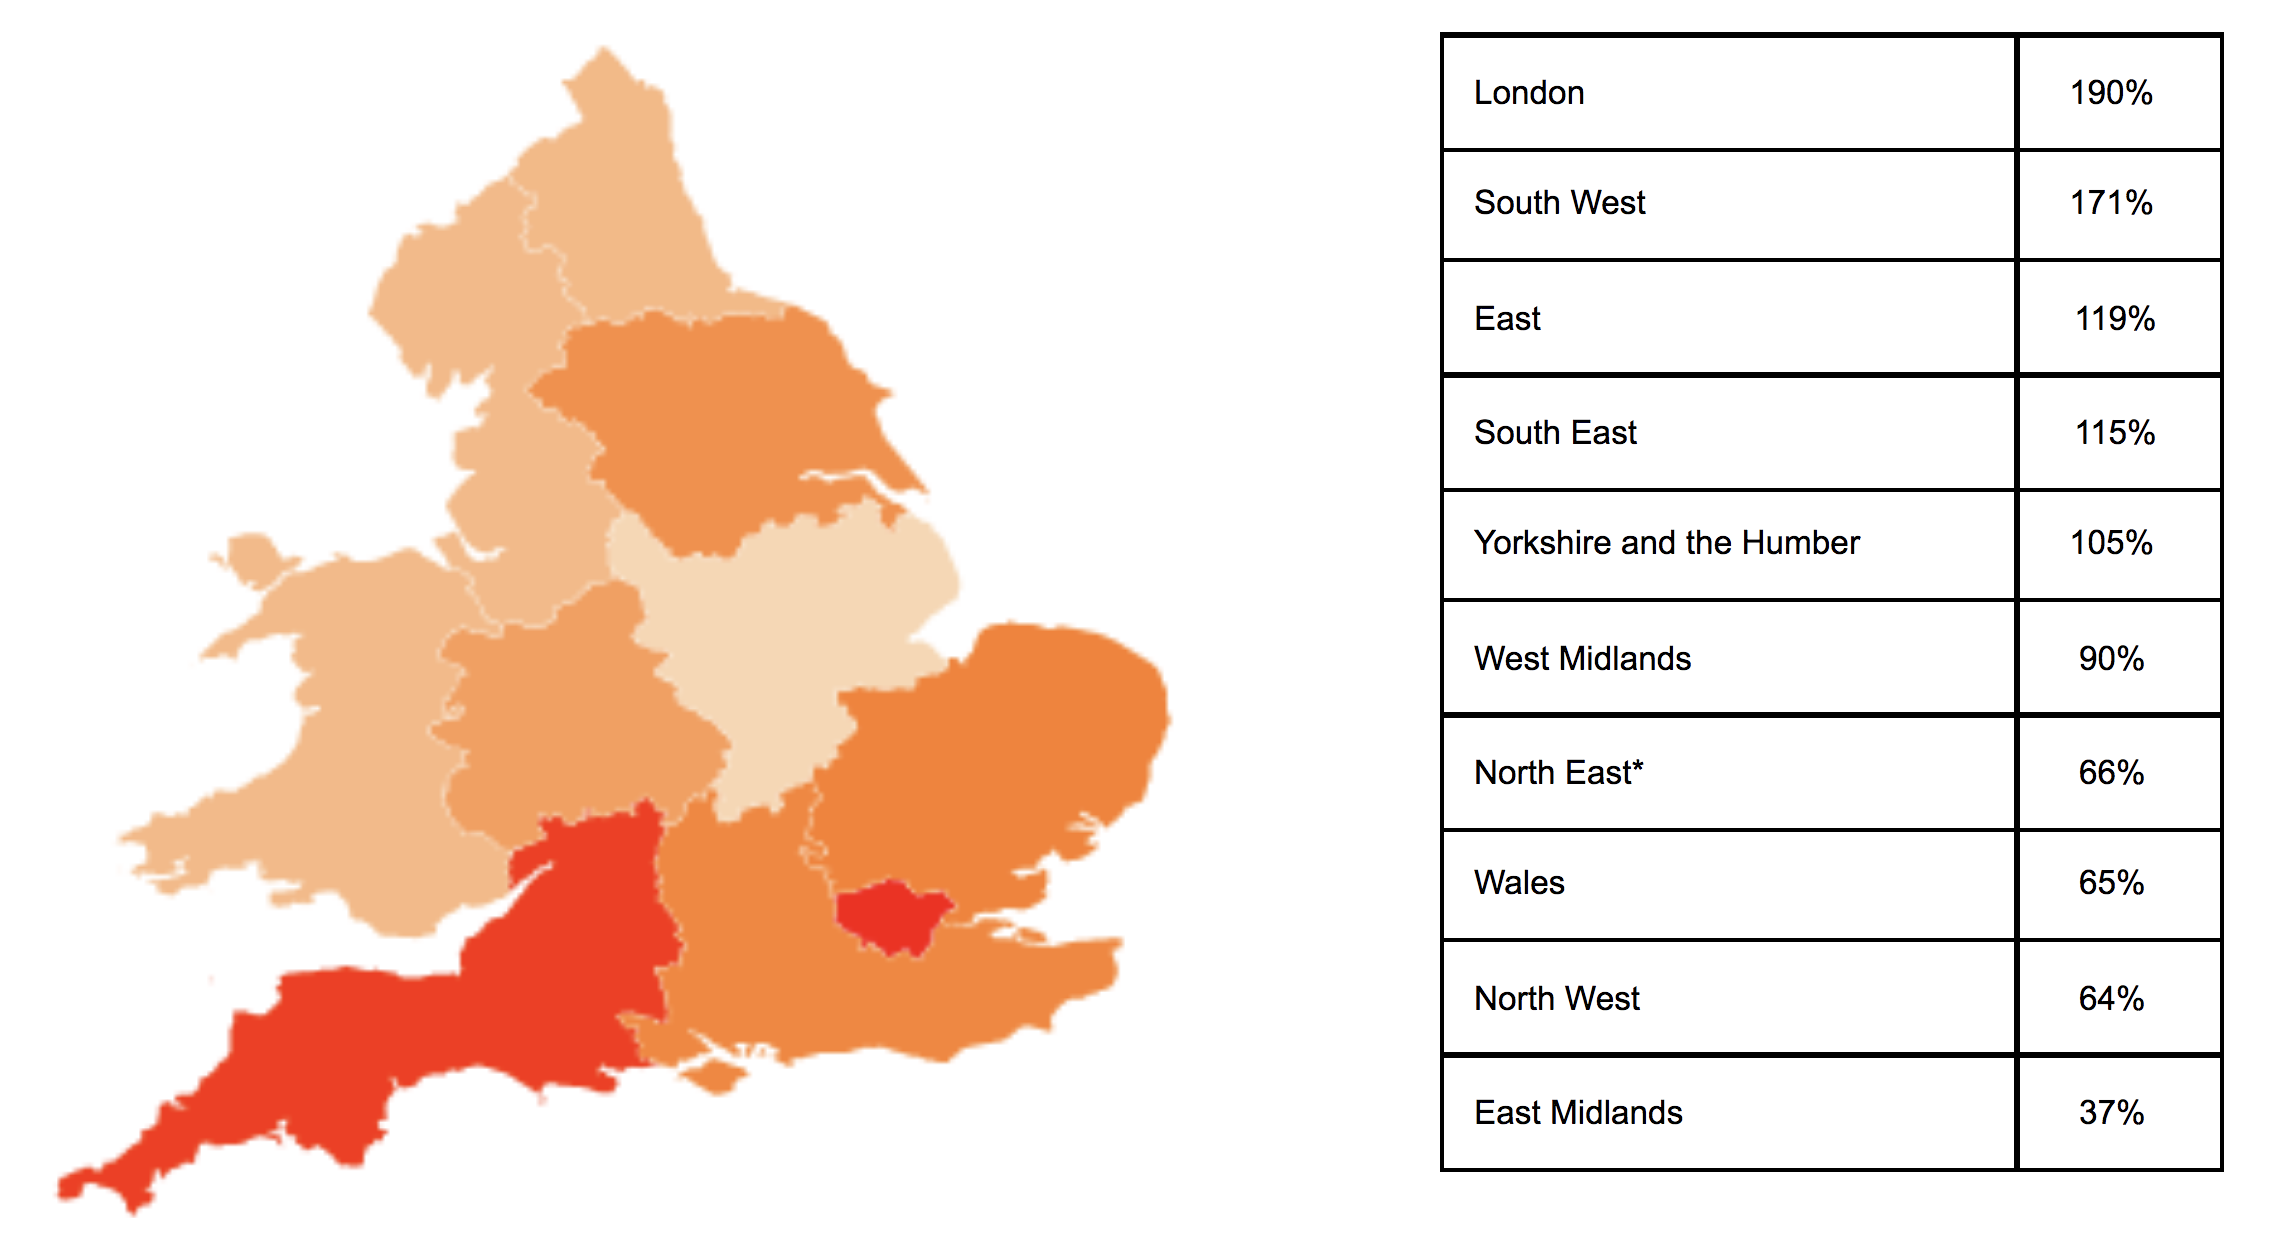 A heatmap of England showing the increase in hospitality job vacancies, broken down by region